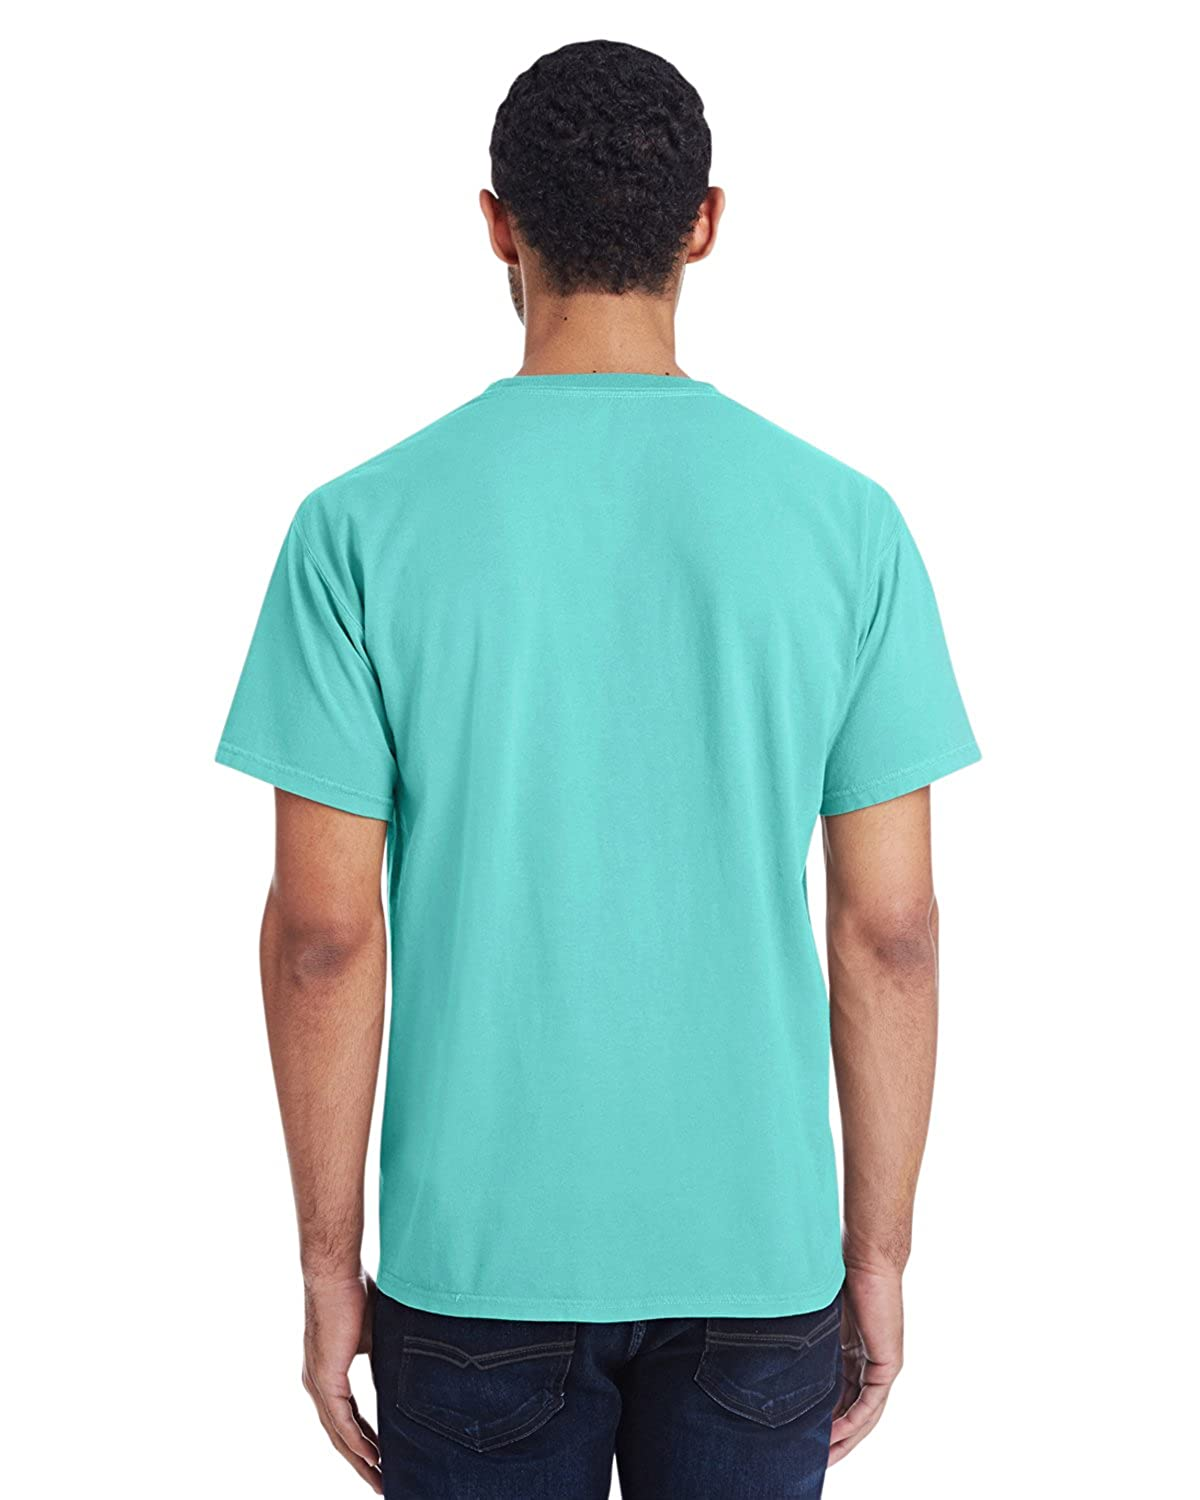 GDH150 Hanes ComfortWash Garment Dyed Short Sleeve T-Shirt with a Pocket